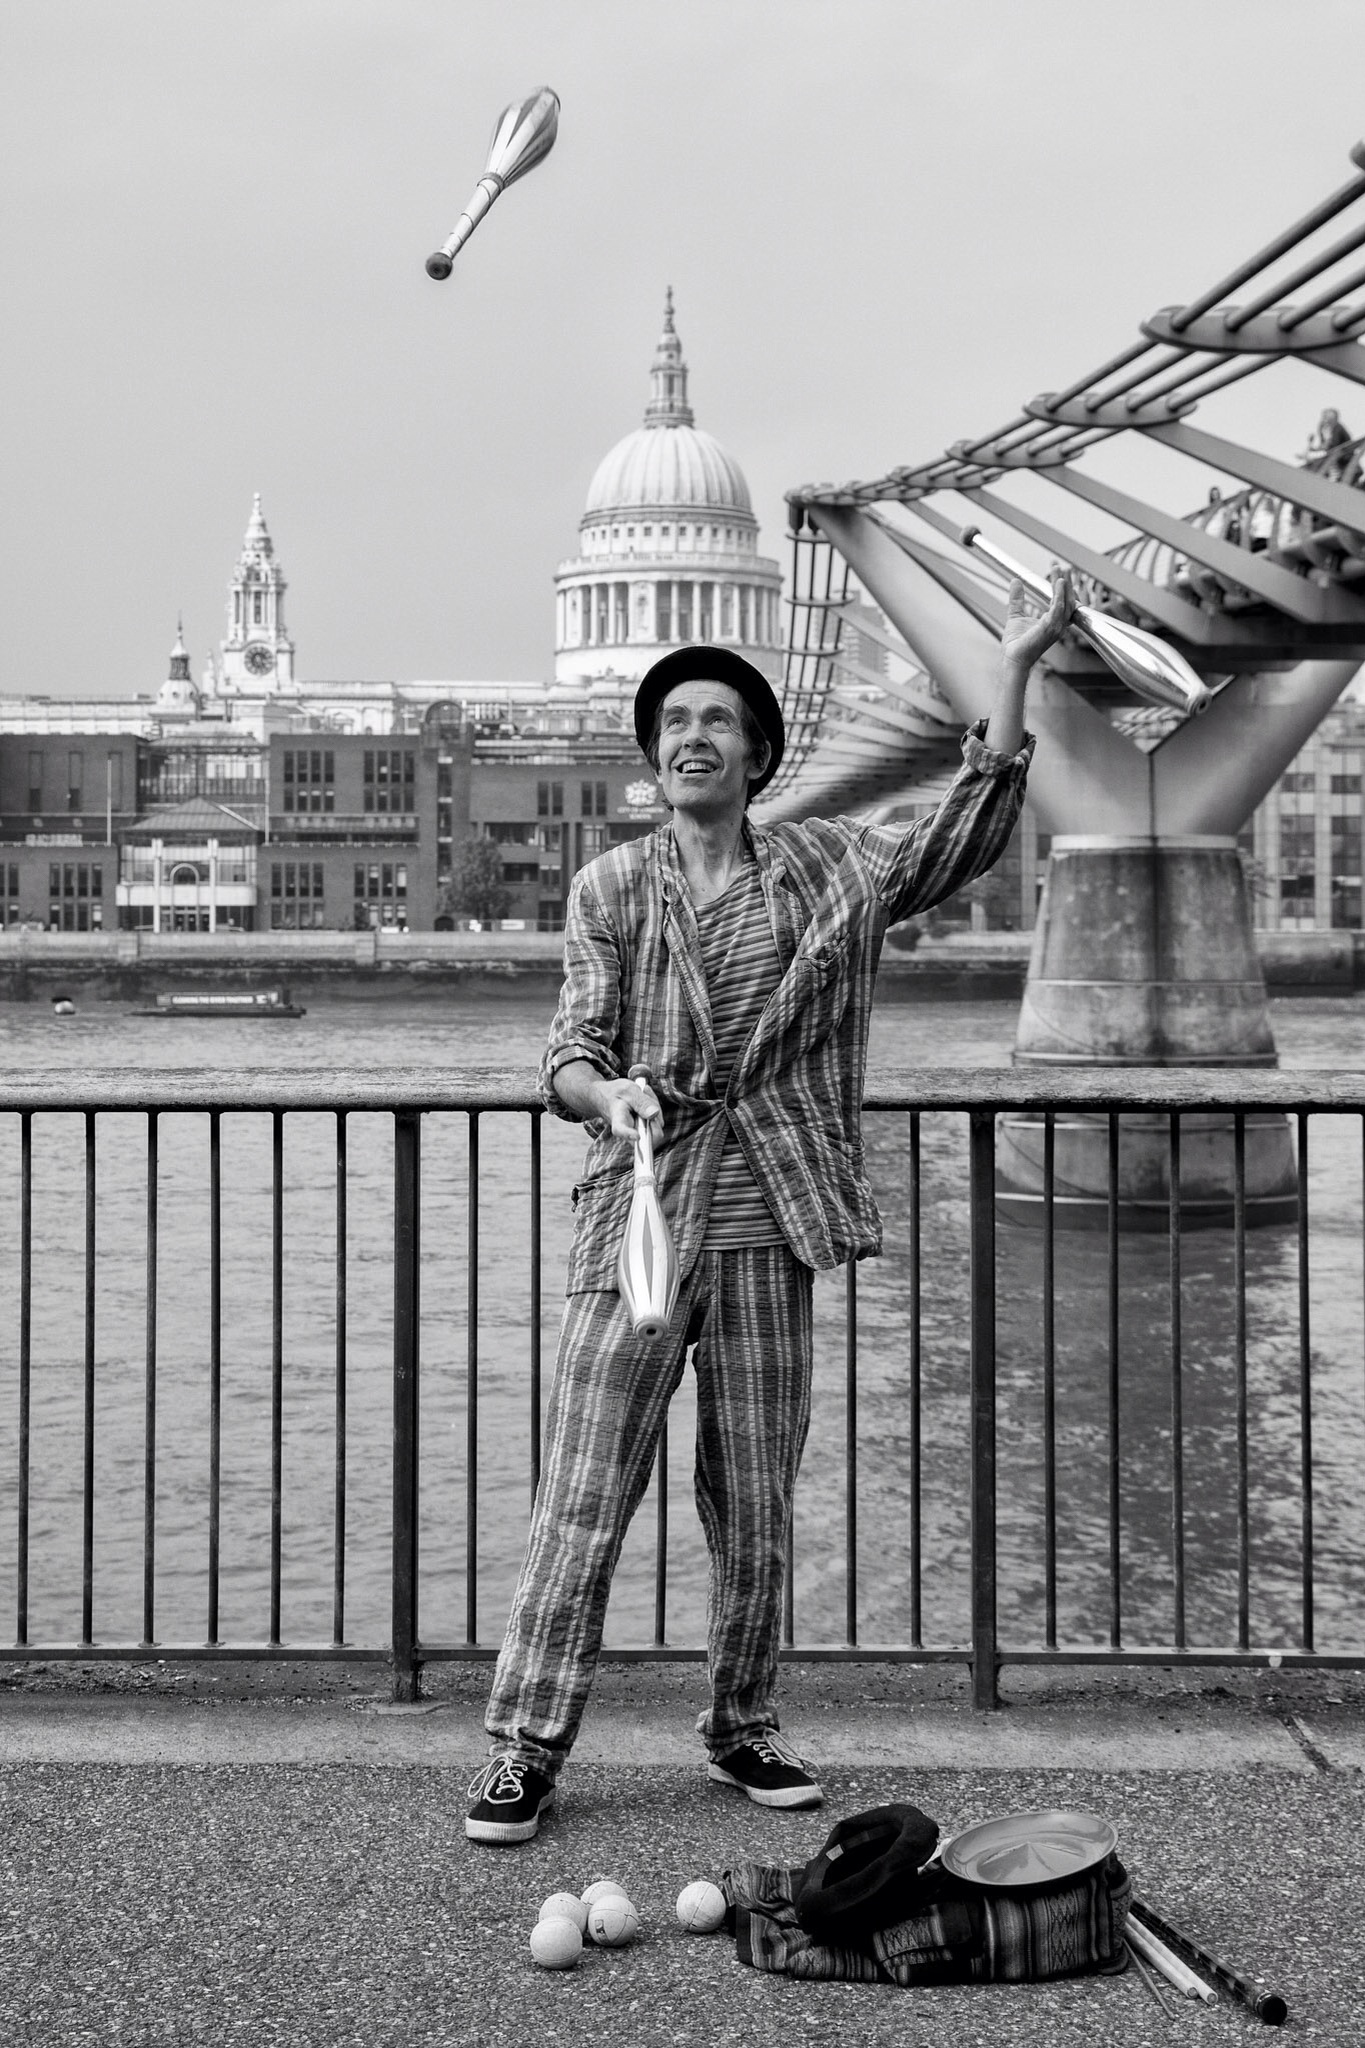 Another London street performer, this time beside the Millennium Bridge.  This chap was an absolute joy to photograph.